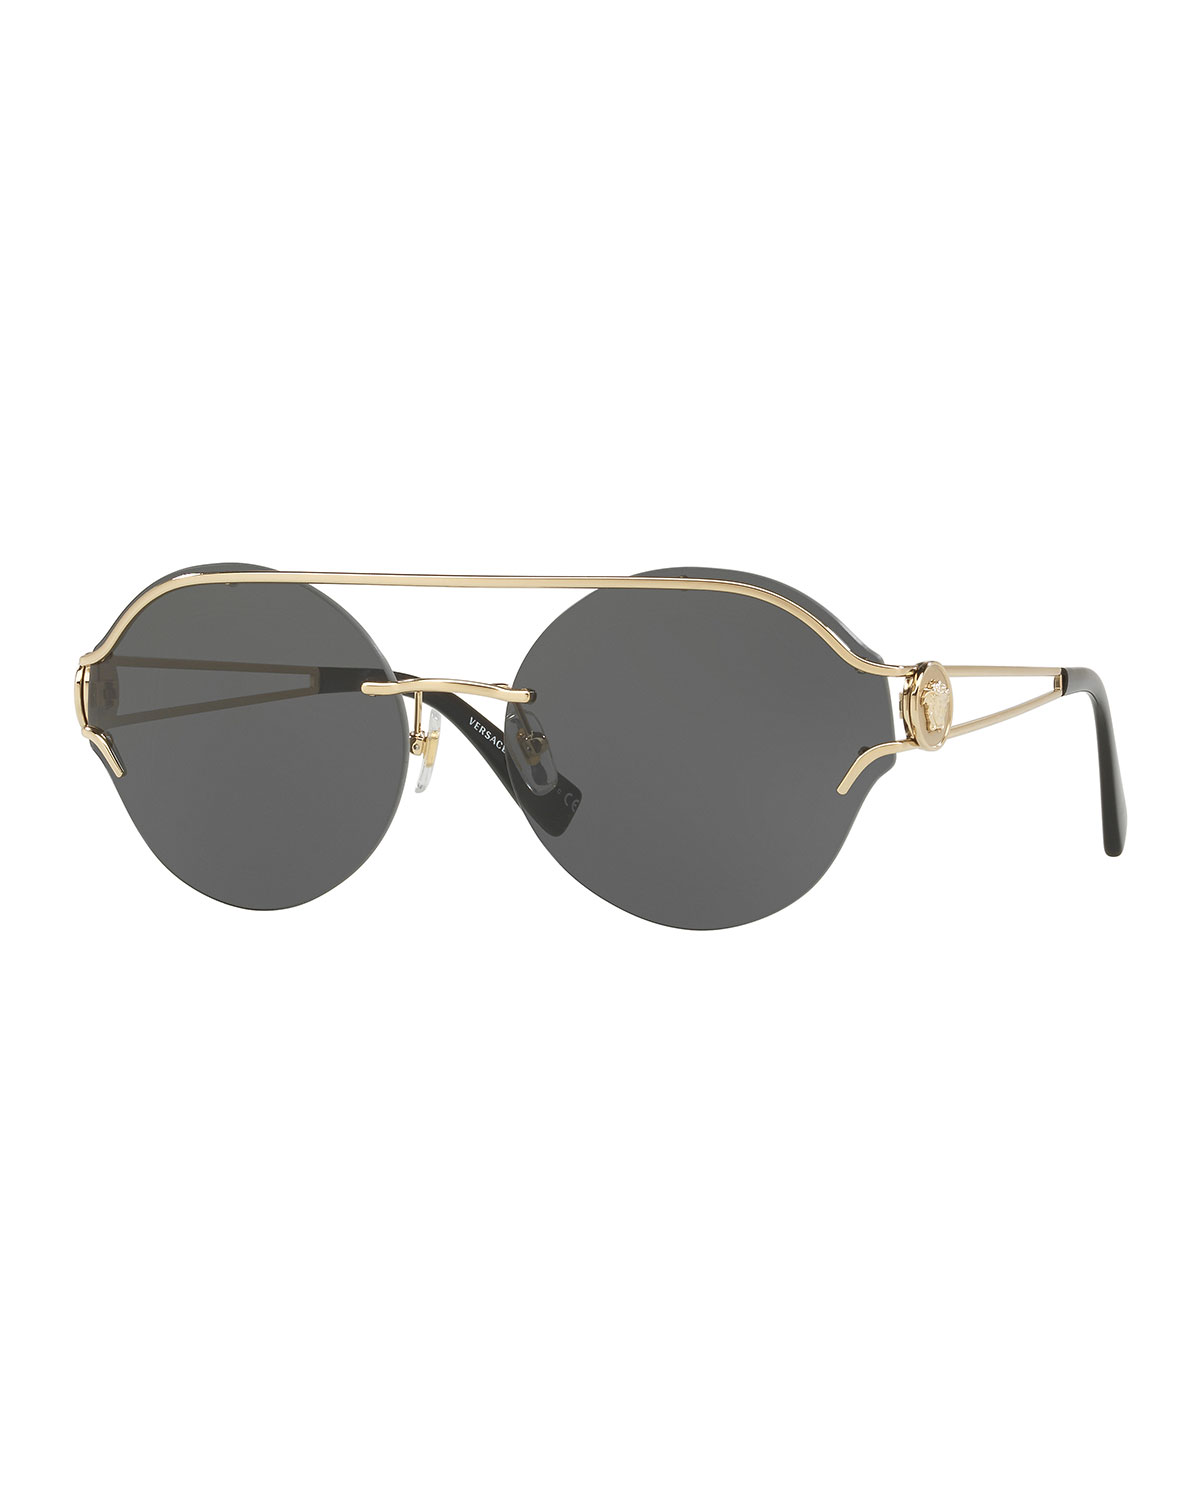 352f8e31dfb Versace Round Rimless Open-Temple Sunglasses